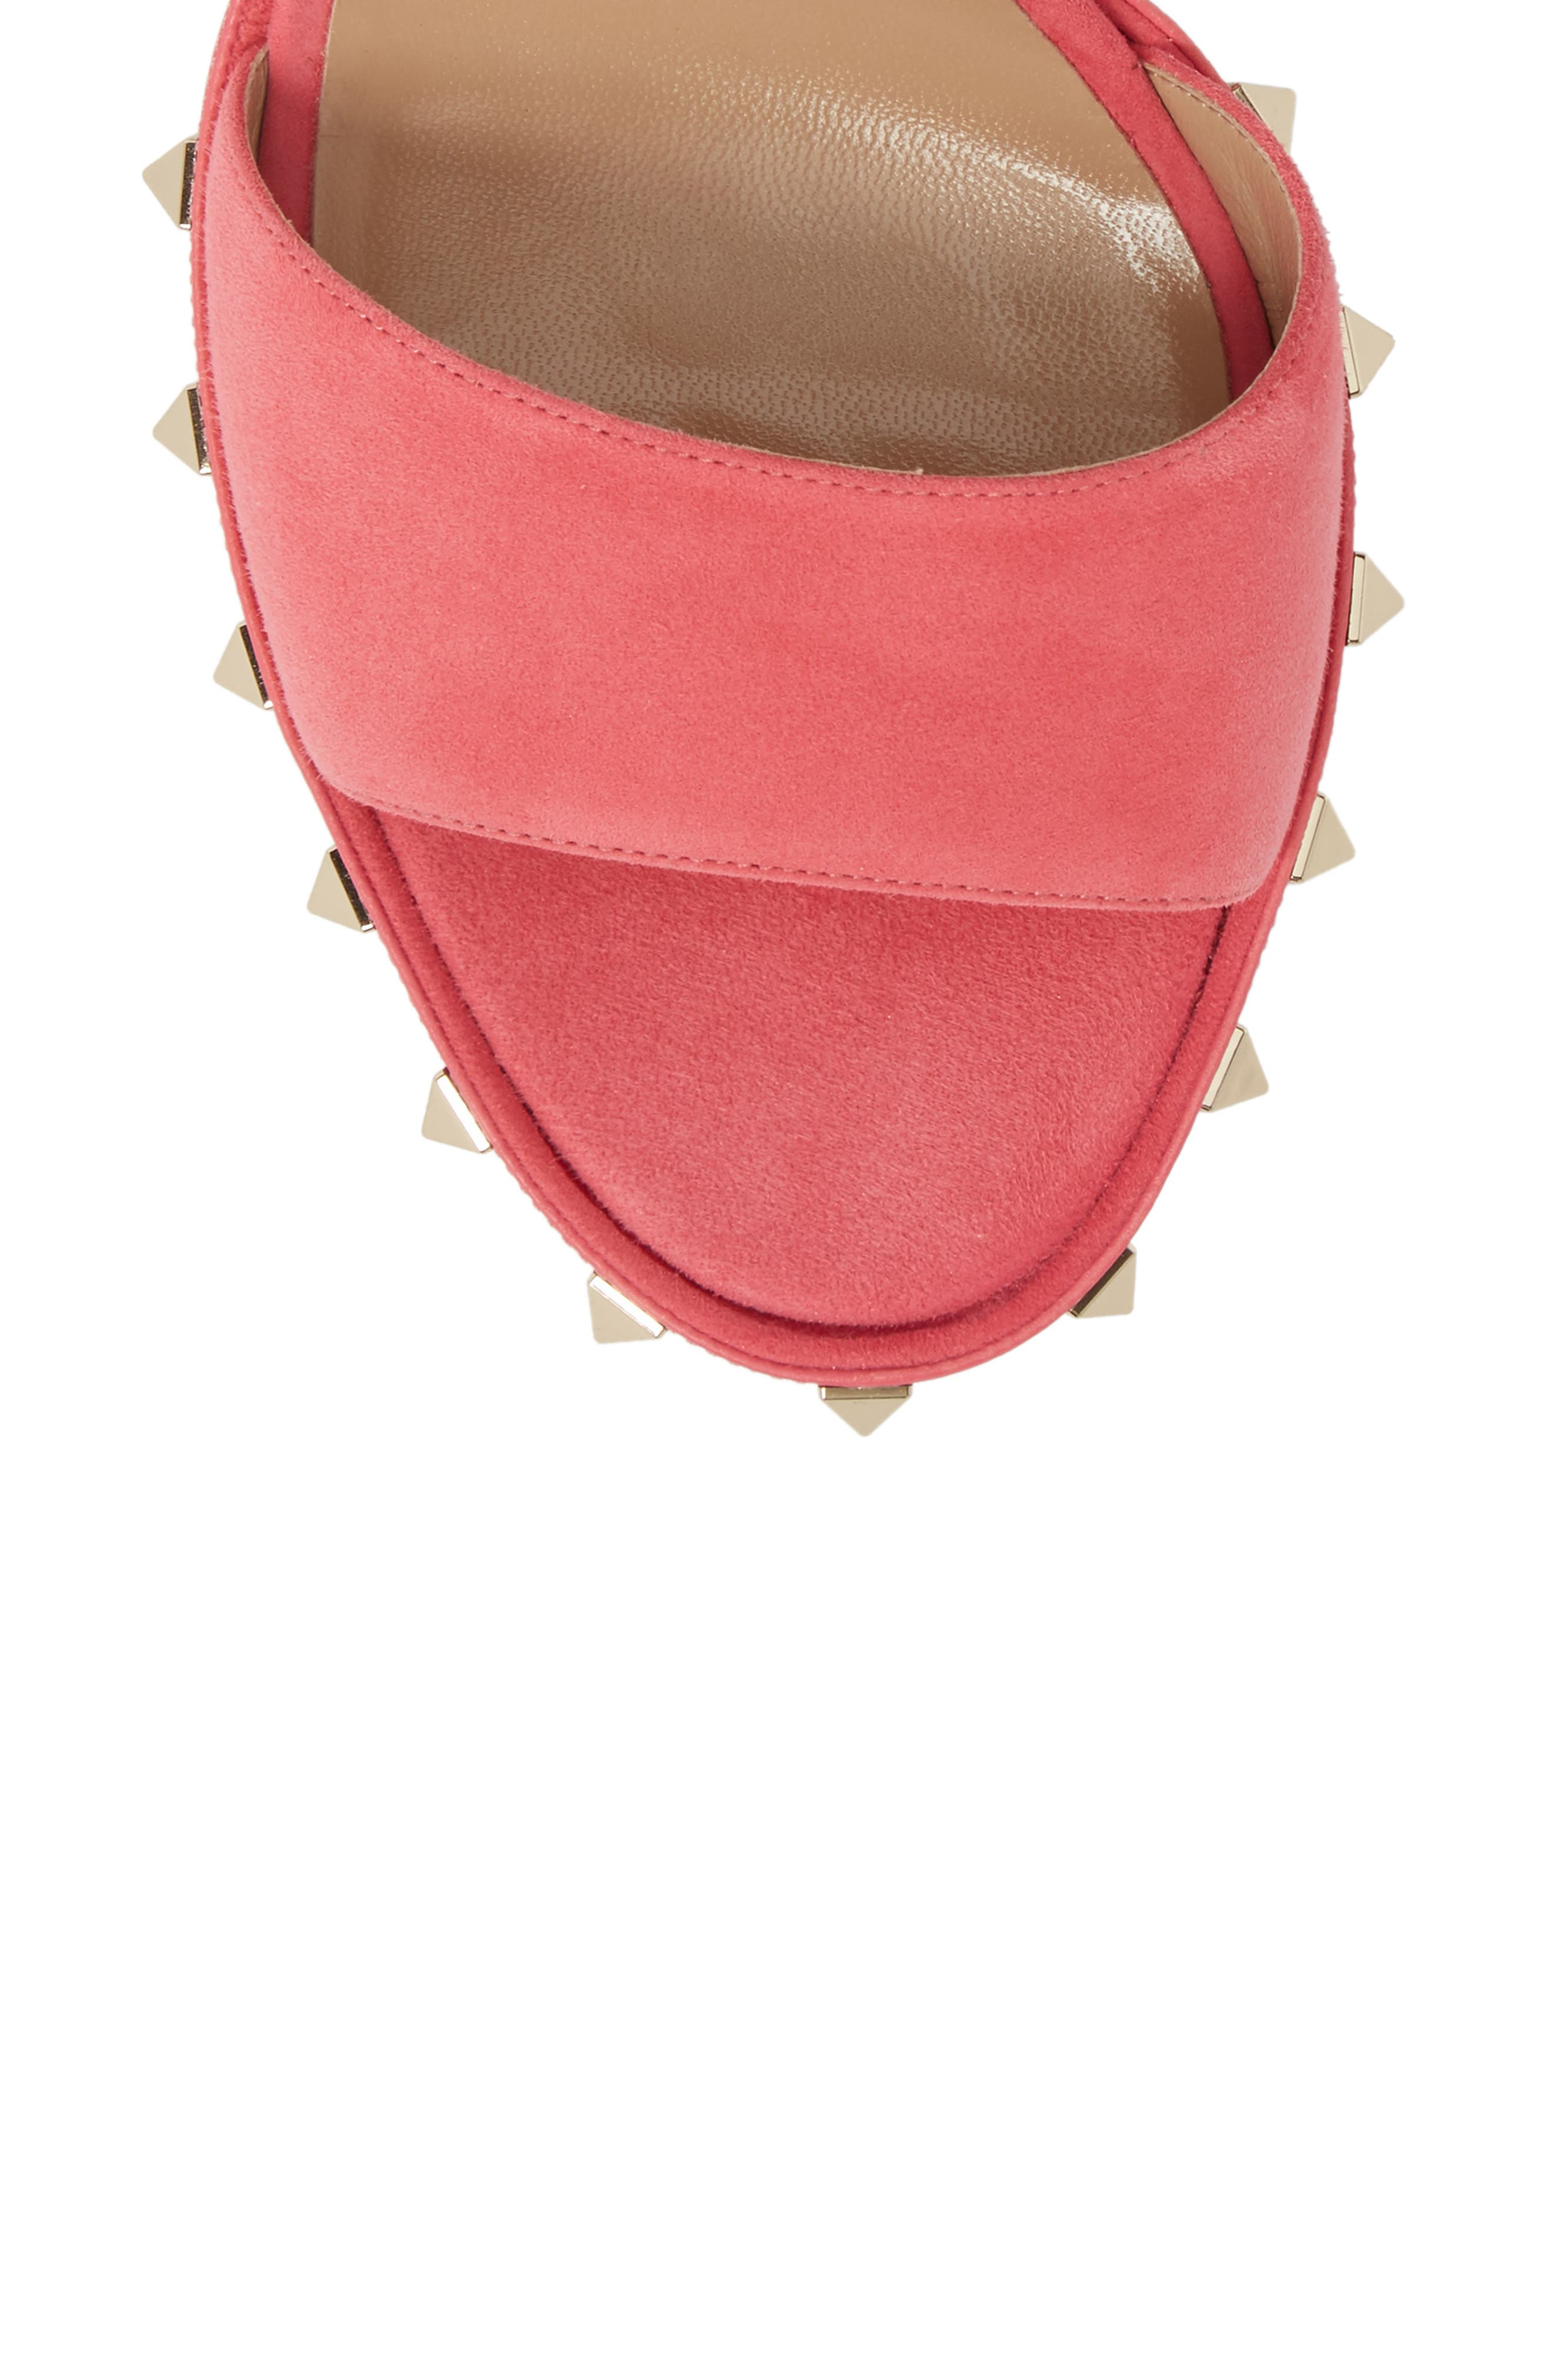 Rockstud Platform Sandal,                             Alternate thumbnail 5, color,                             Shadow Pink